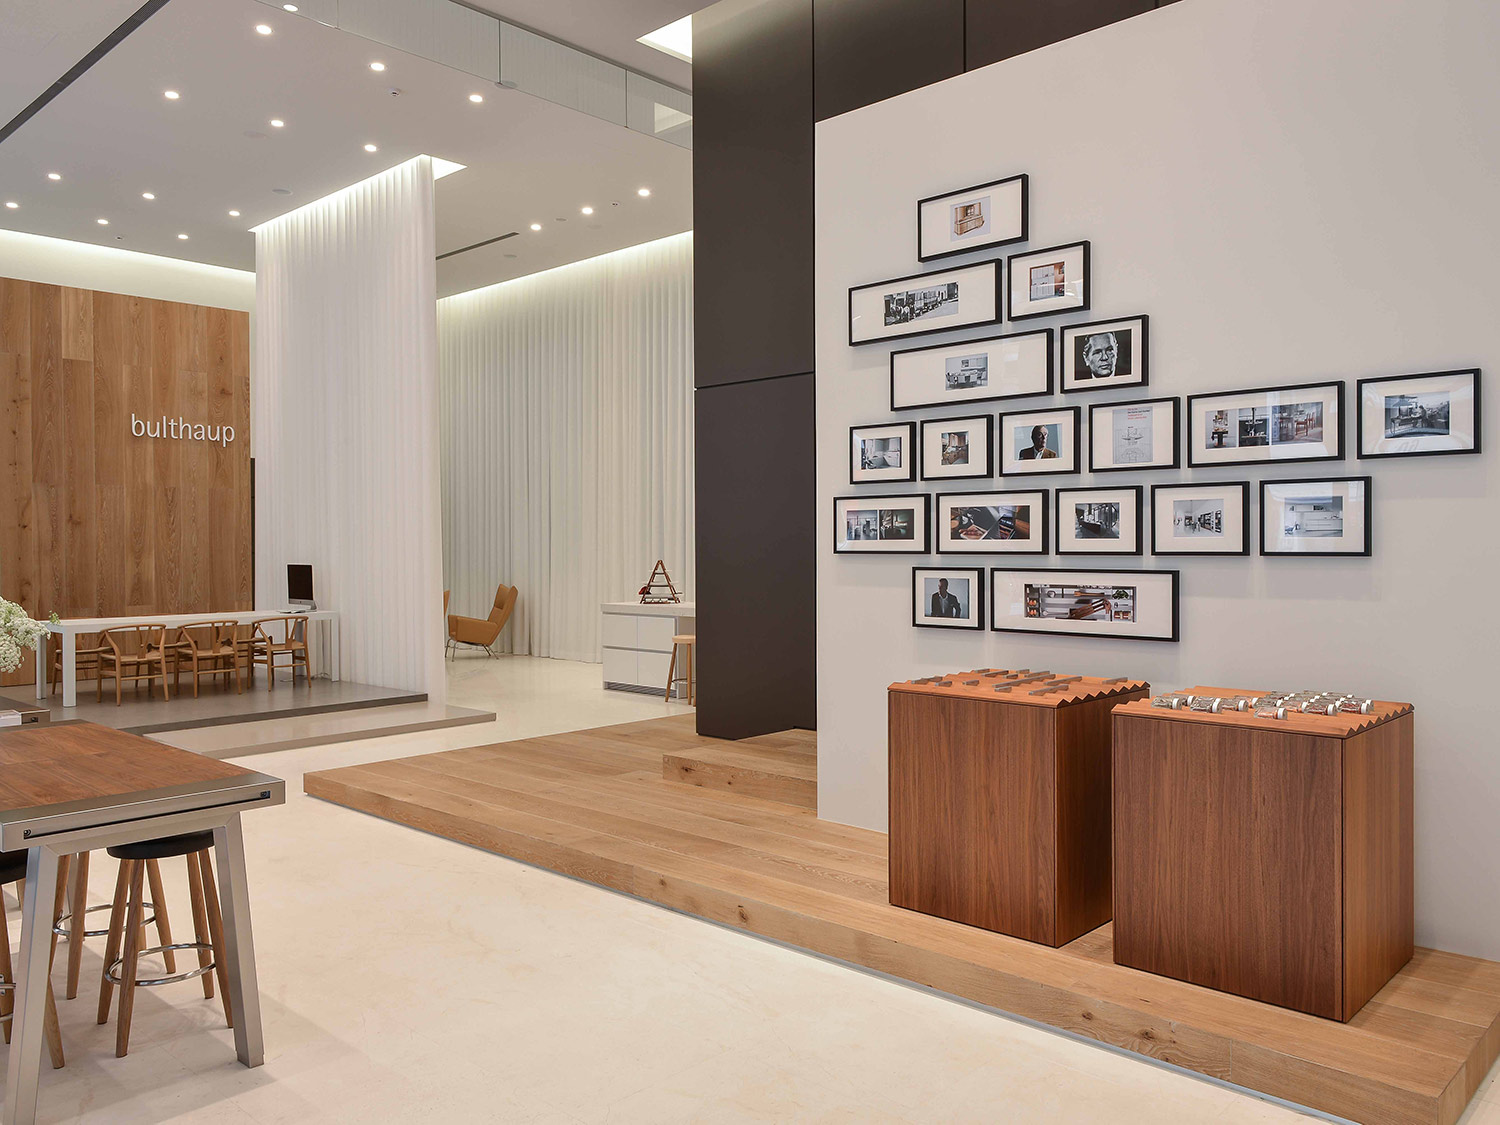 Bulthaup Showroom